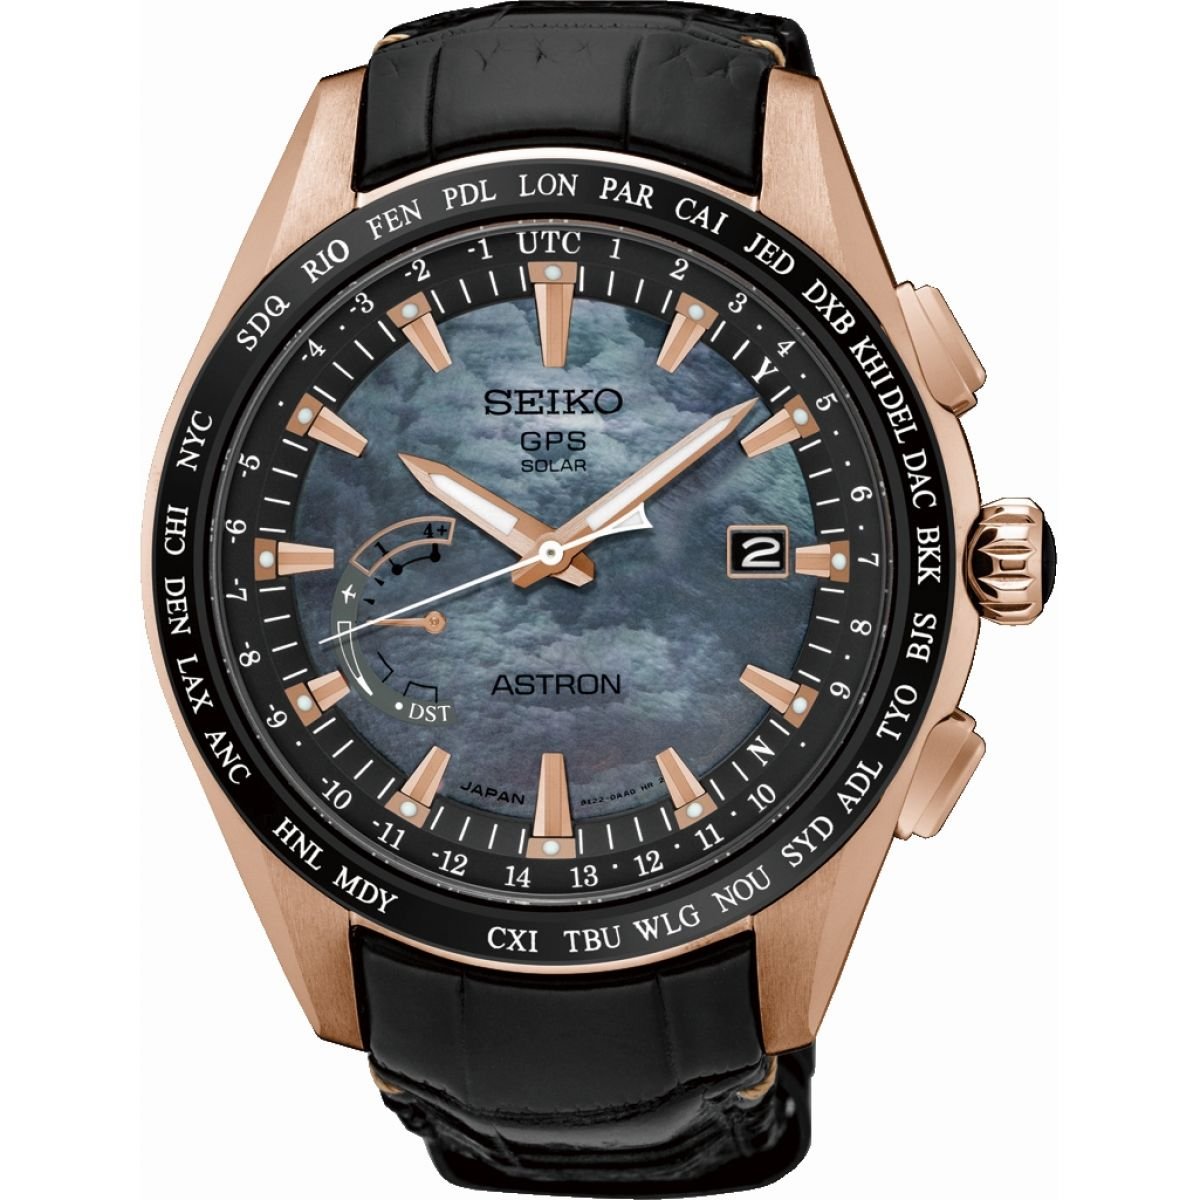 gents seiko astron gps limited edition watch sse105j1 watchshop com rh watchshop com seiko astron gps solar user manual seiko astron user manual